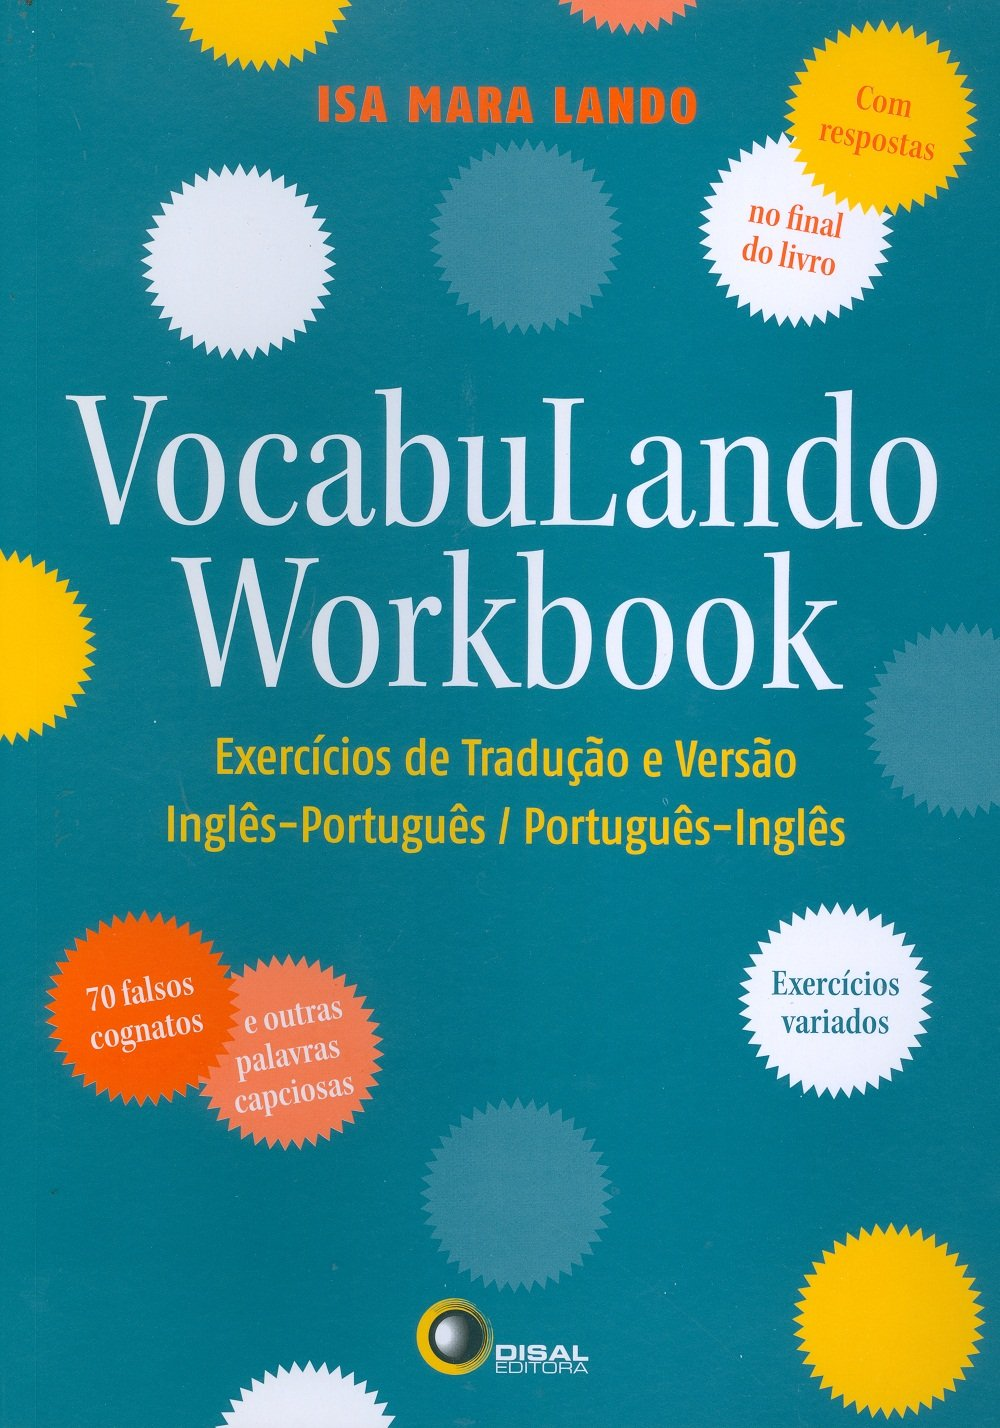 vocabulando workbook.jpg